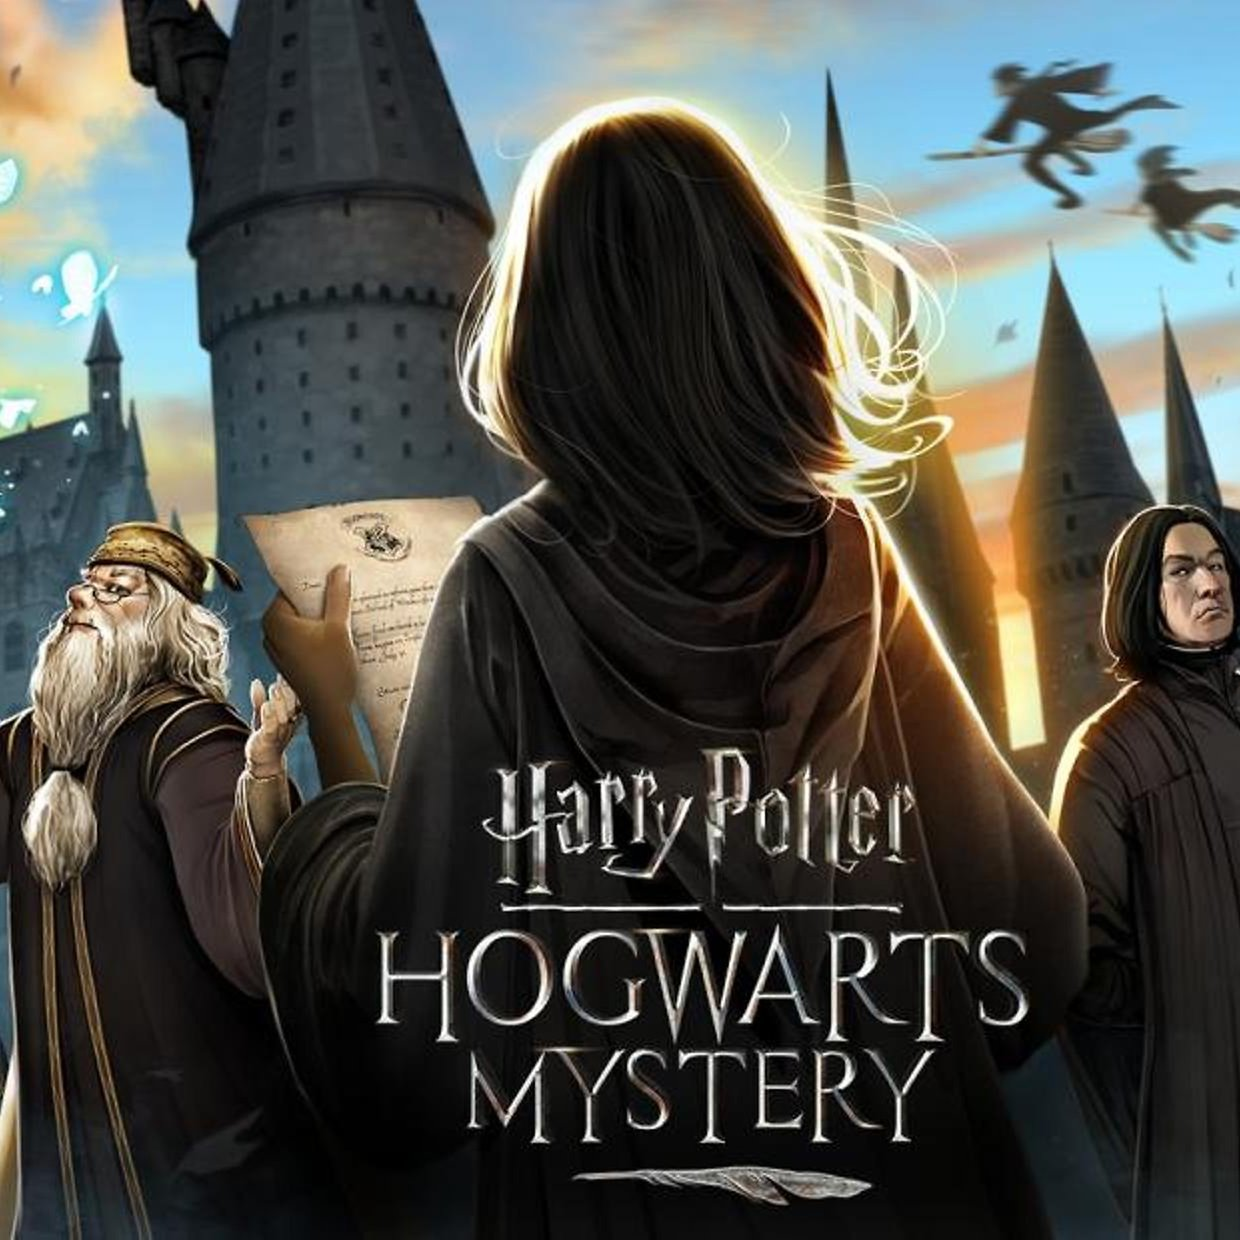 Harry Potter Hogwarts Mystery 1.5.4 APK